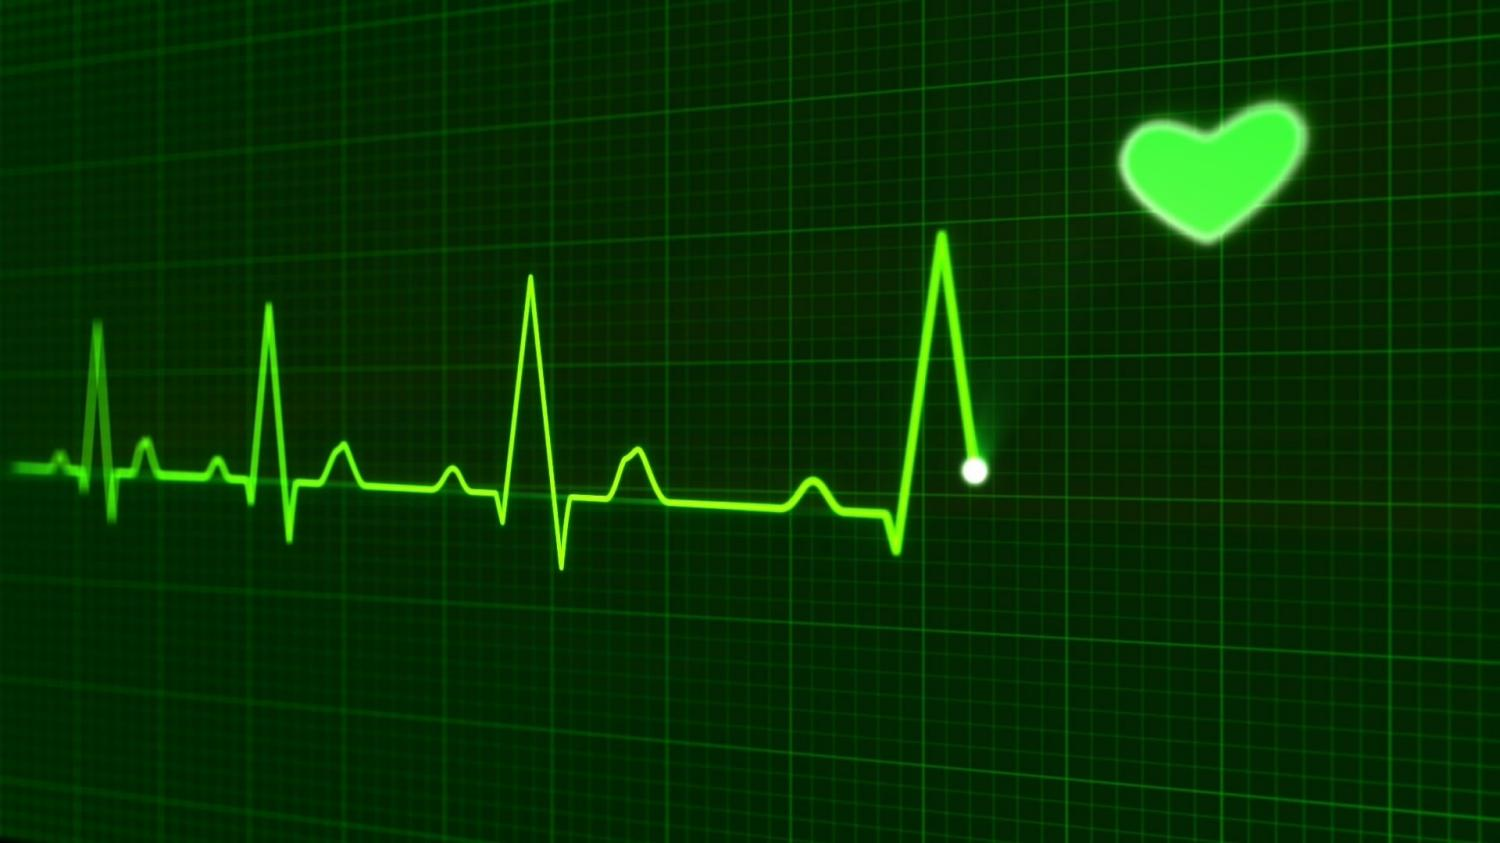 Improving cardiovascular health of the most vulnerable